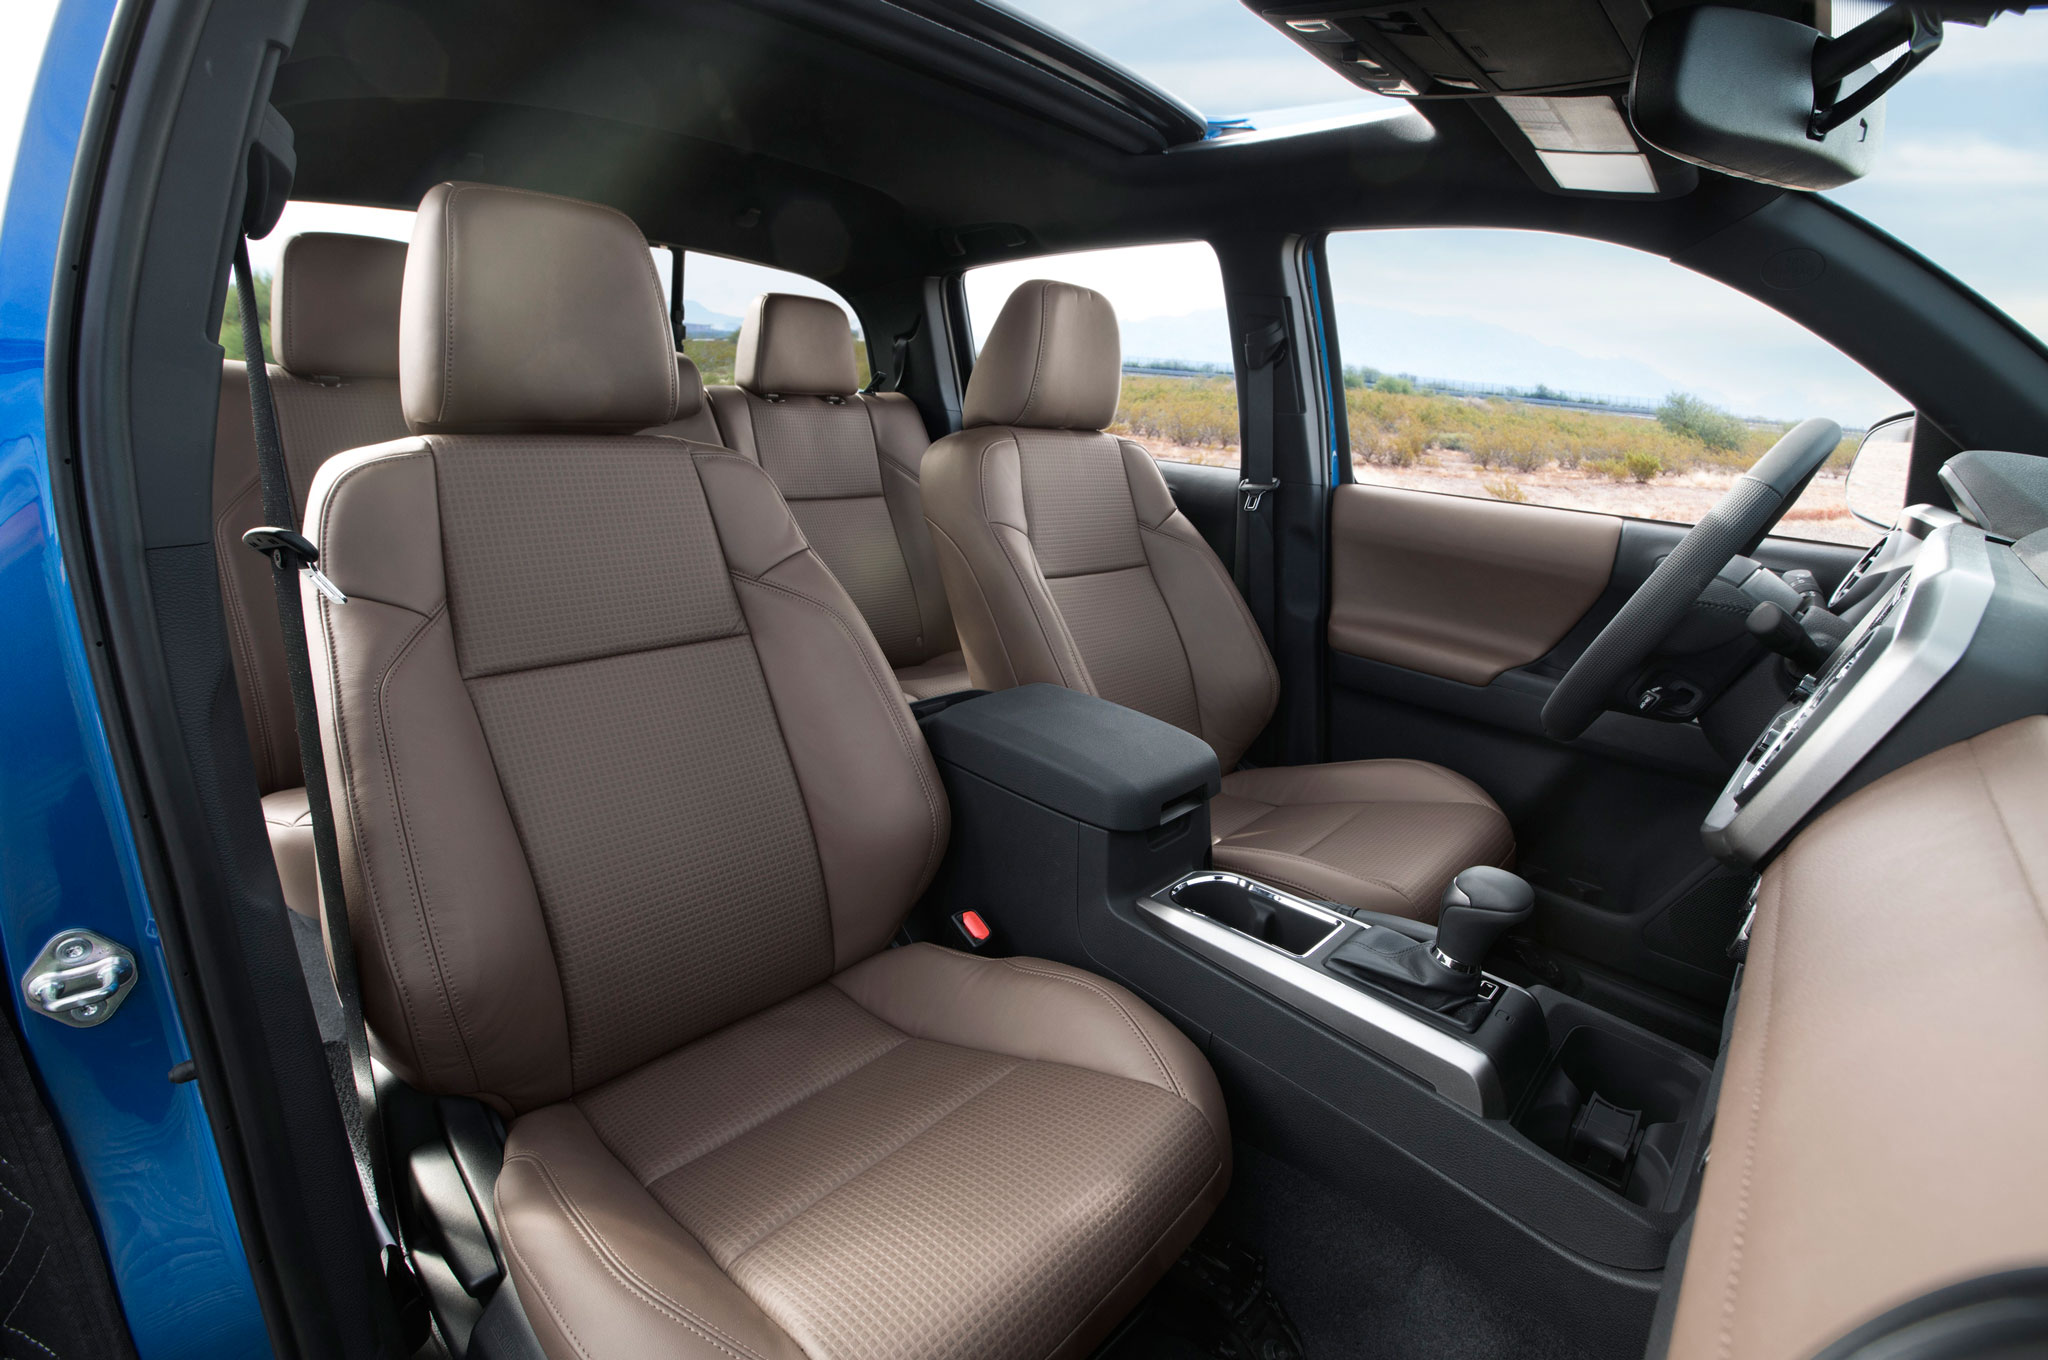 2016 Toyota Tacoma Limited Interior Seats Preview (Photo 8 of 10)